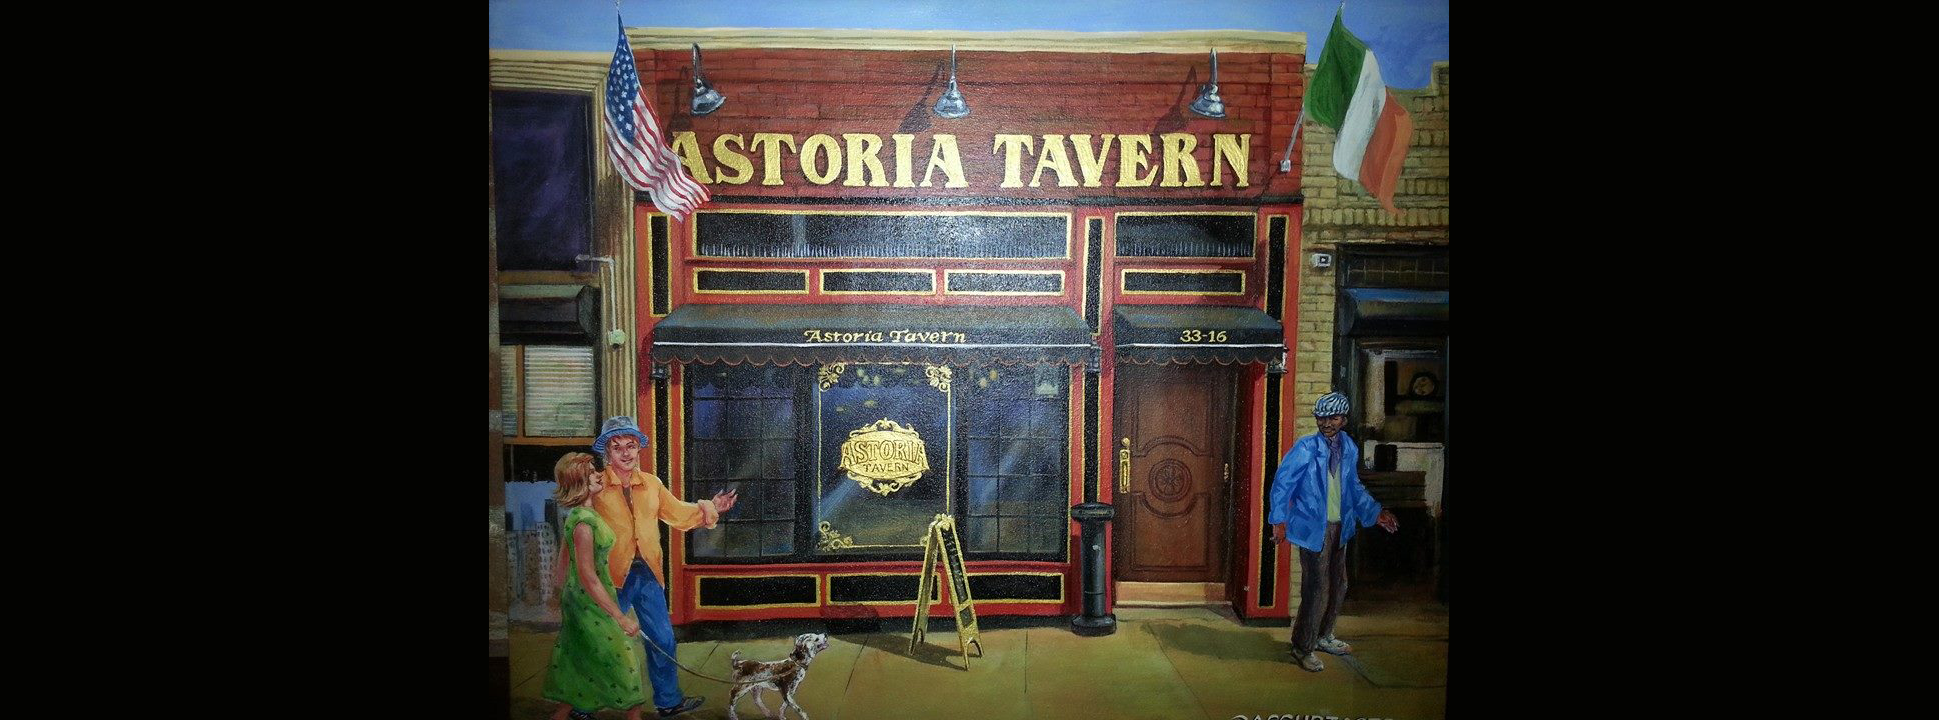 Astoria Tavern Painting Slideshow